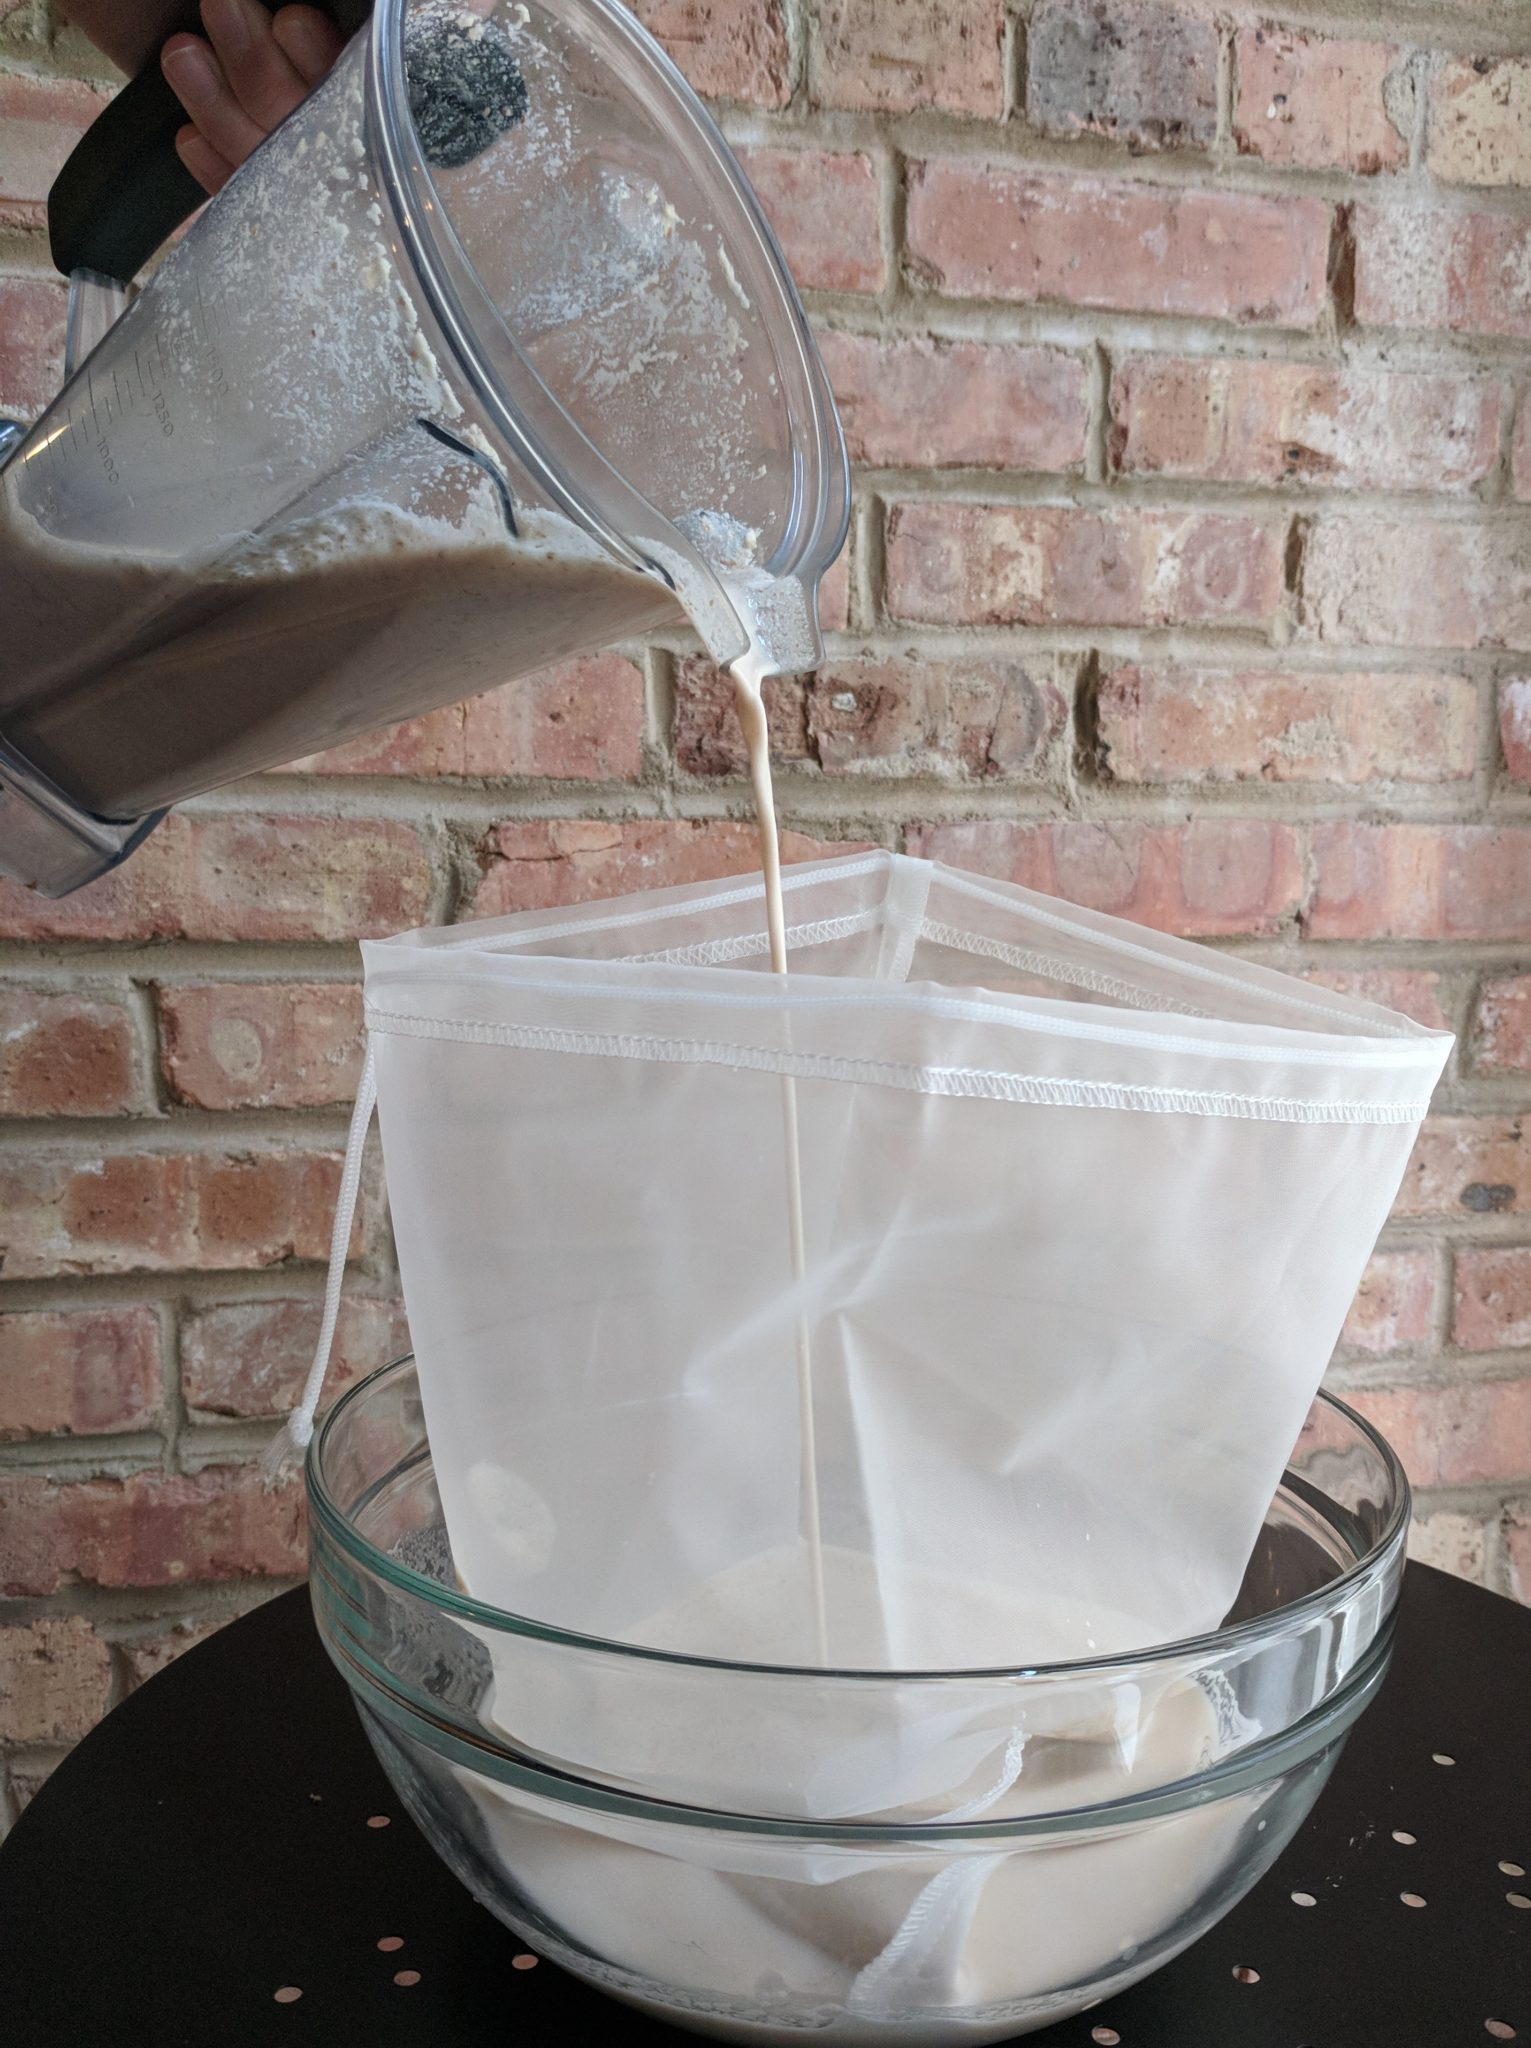 How to strain nut milk when making your own nut milk